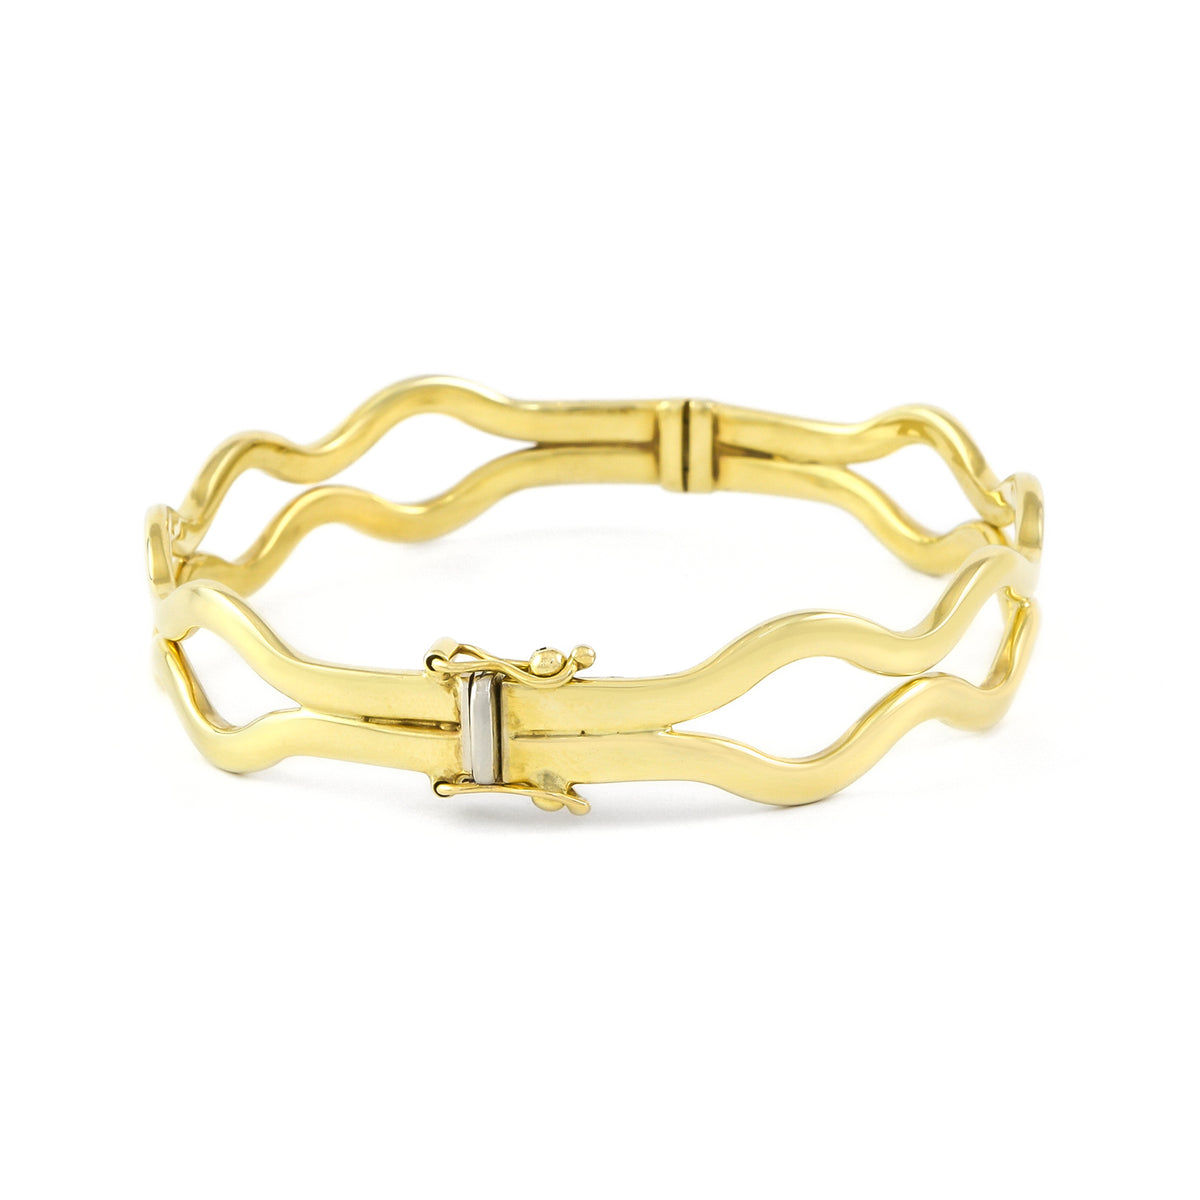 Vintage 9ct Yellow Gold Hinged Bangle